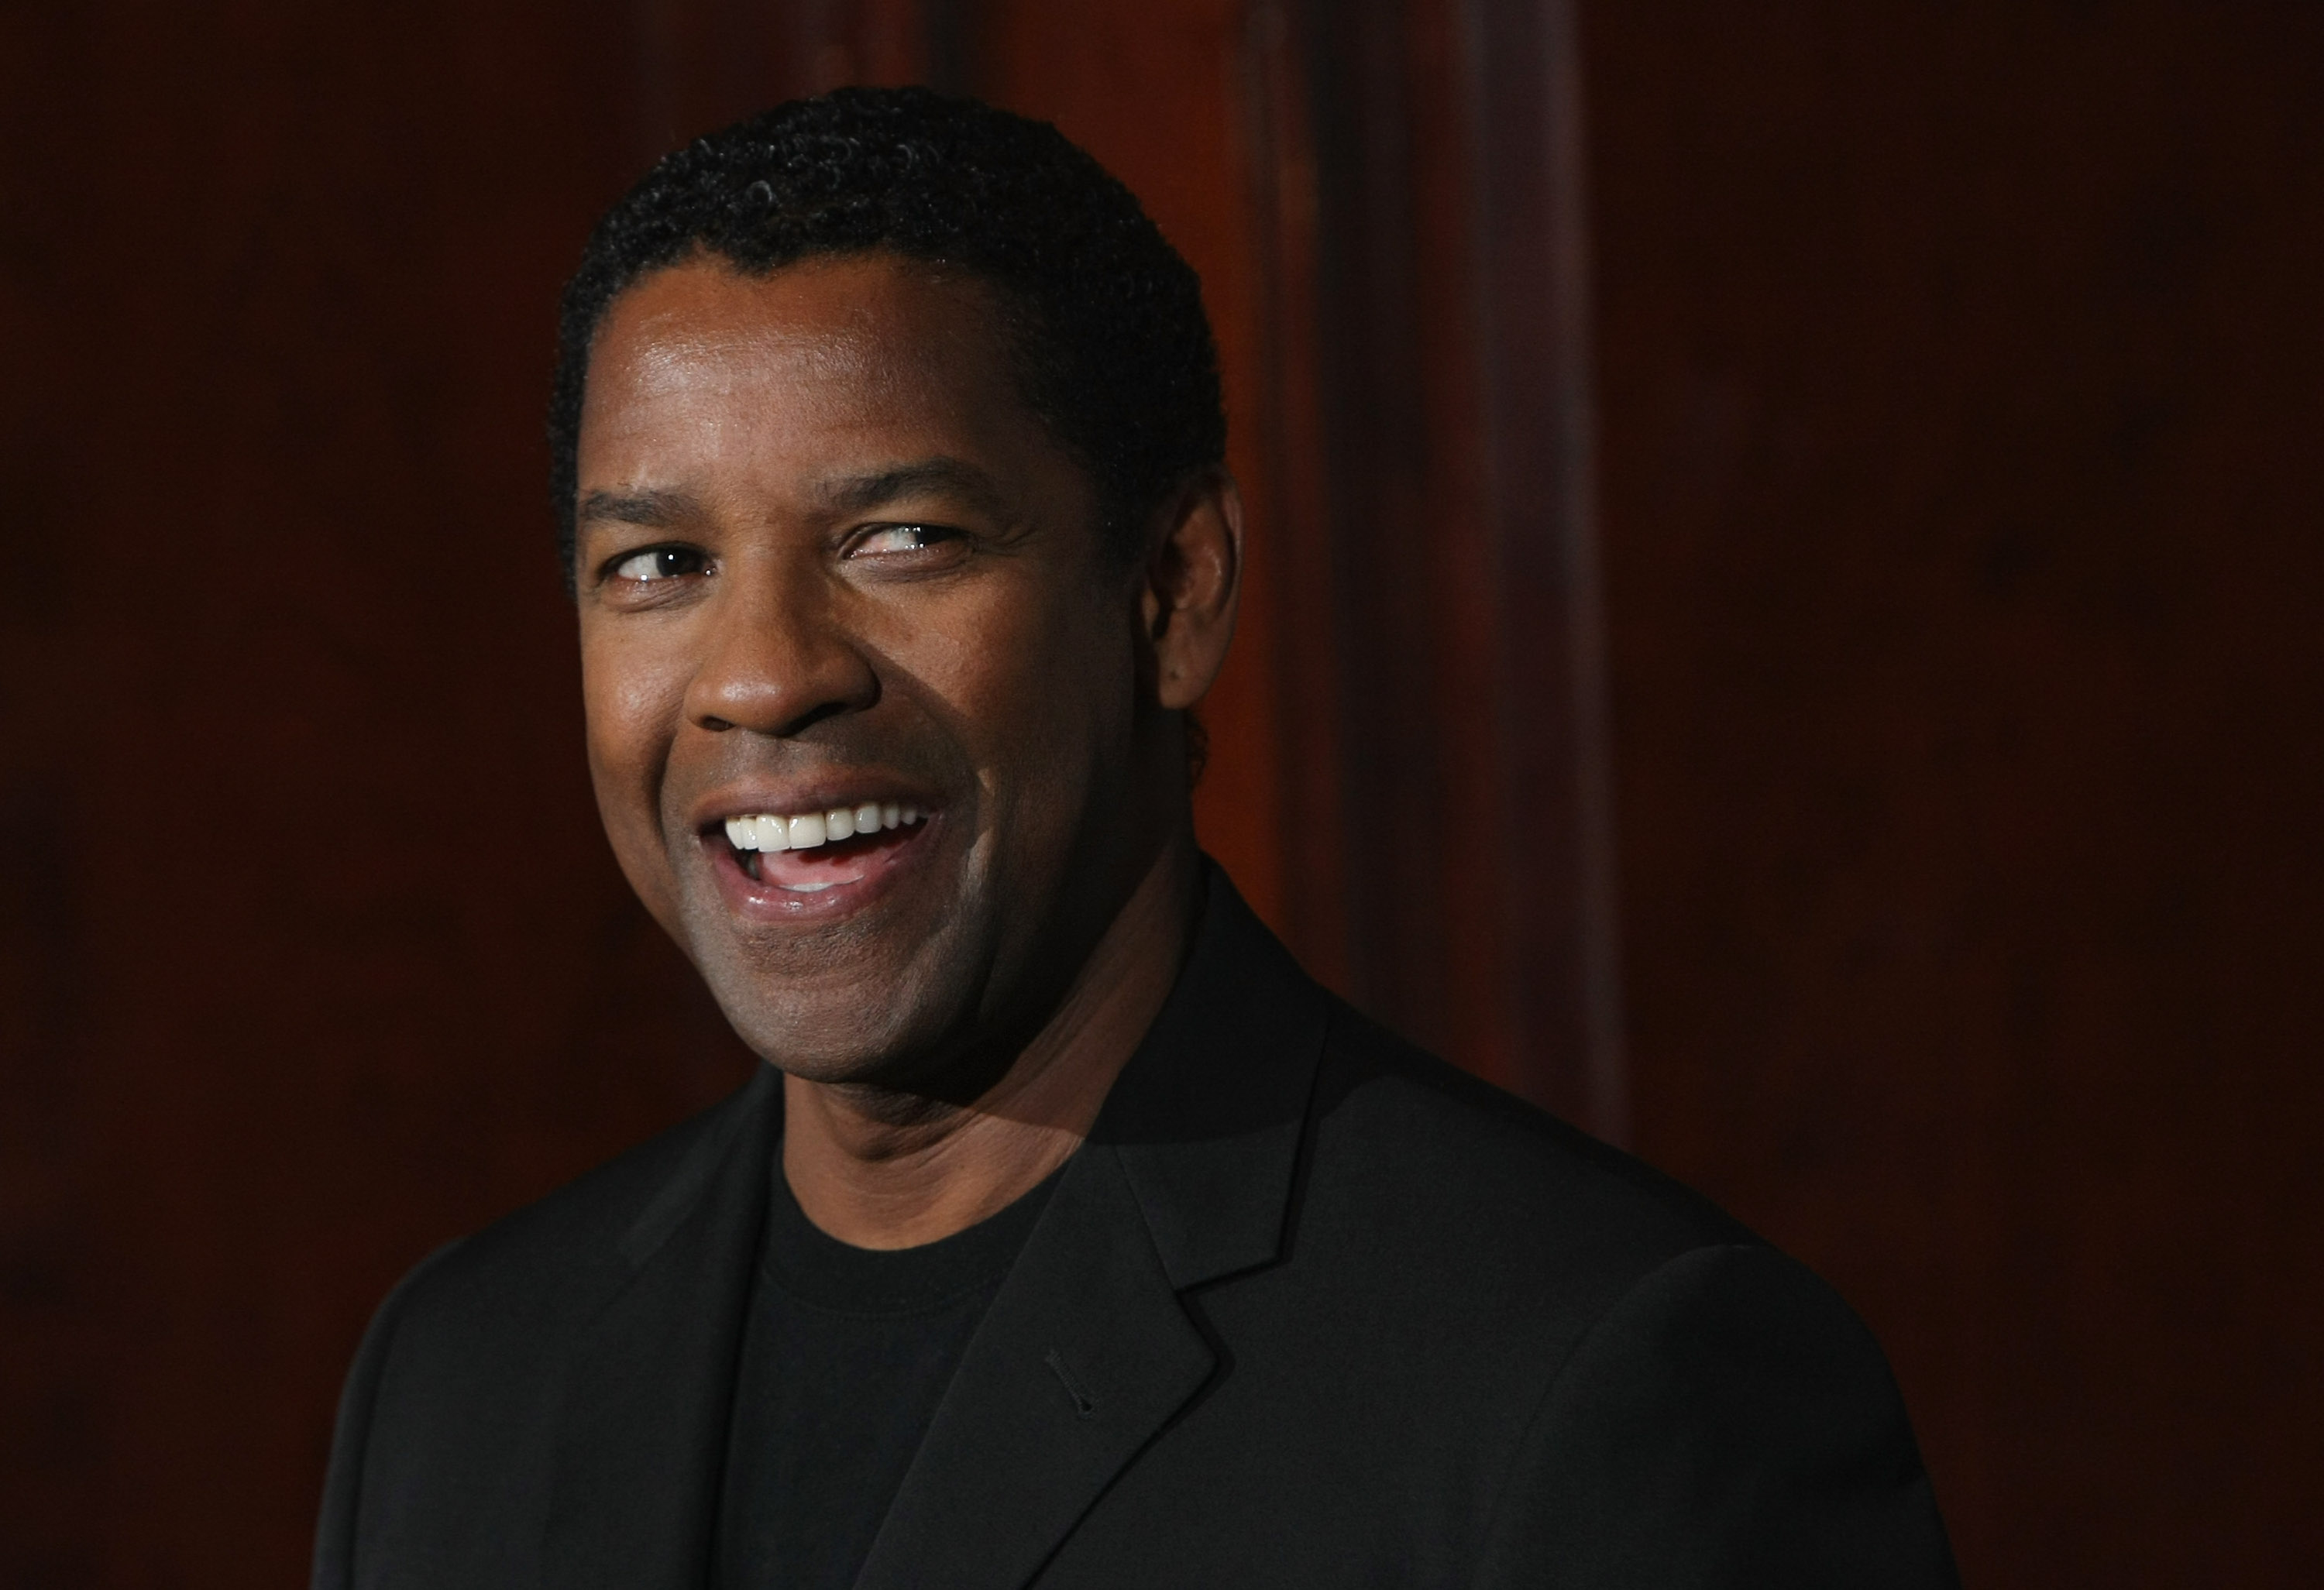 Denzel Washington Attends 'The Taking Of Pelham 123' Press Junket